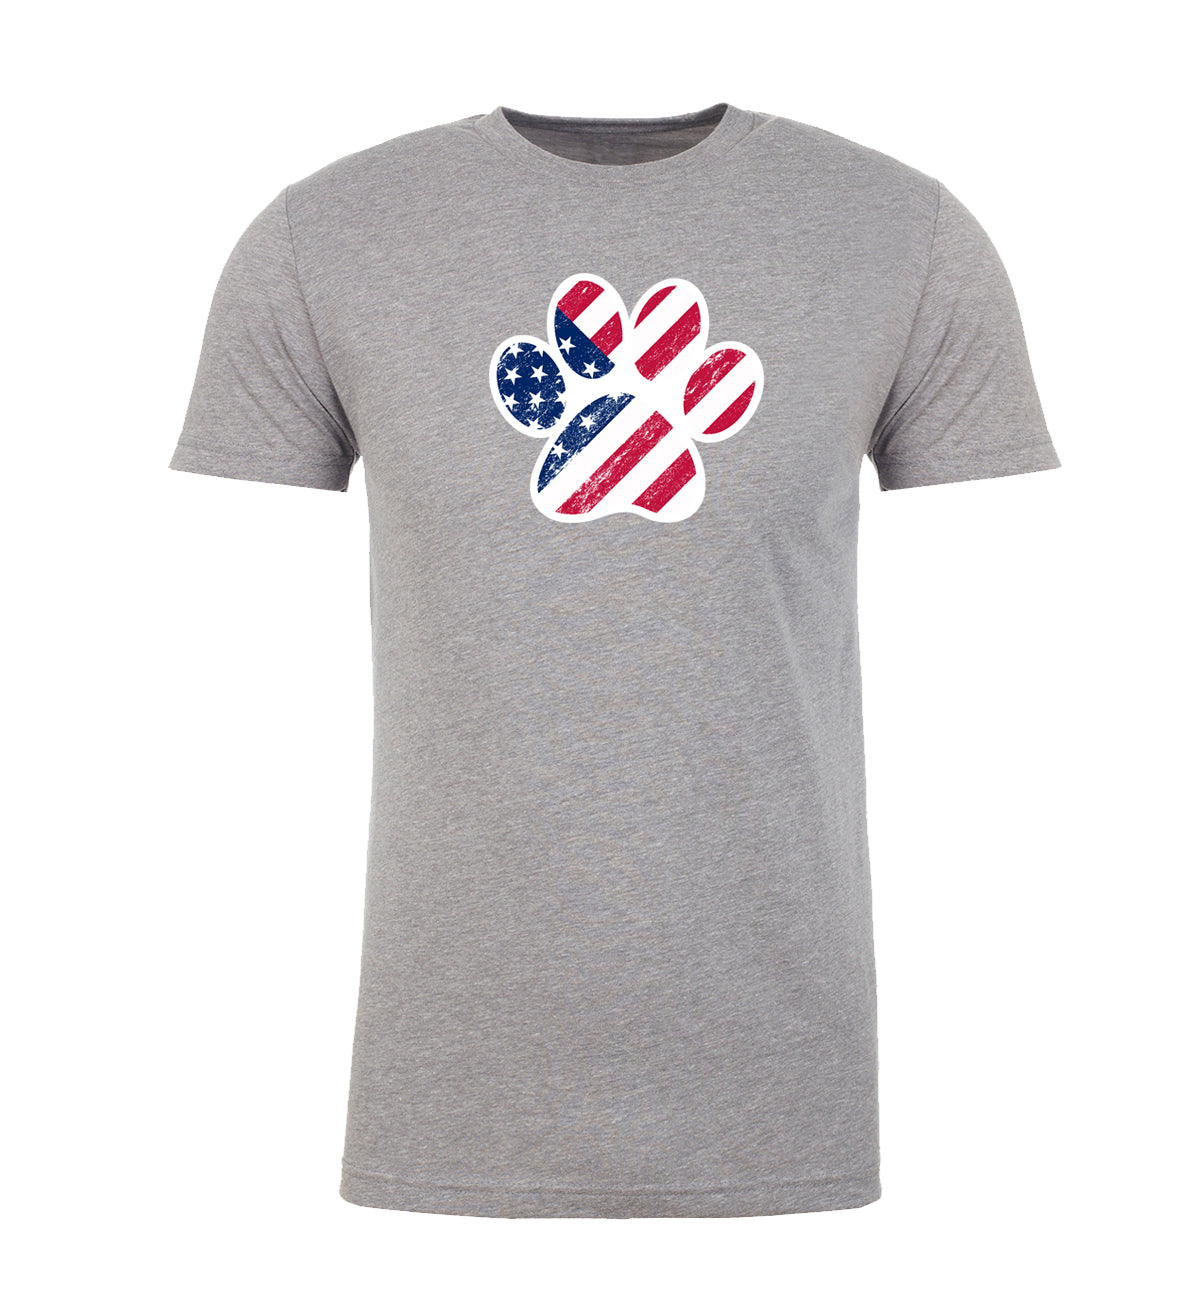 Shirt - American Flag Dog Paw, Men's Graphic T-shirts, 4th Of July T-shirts